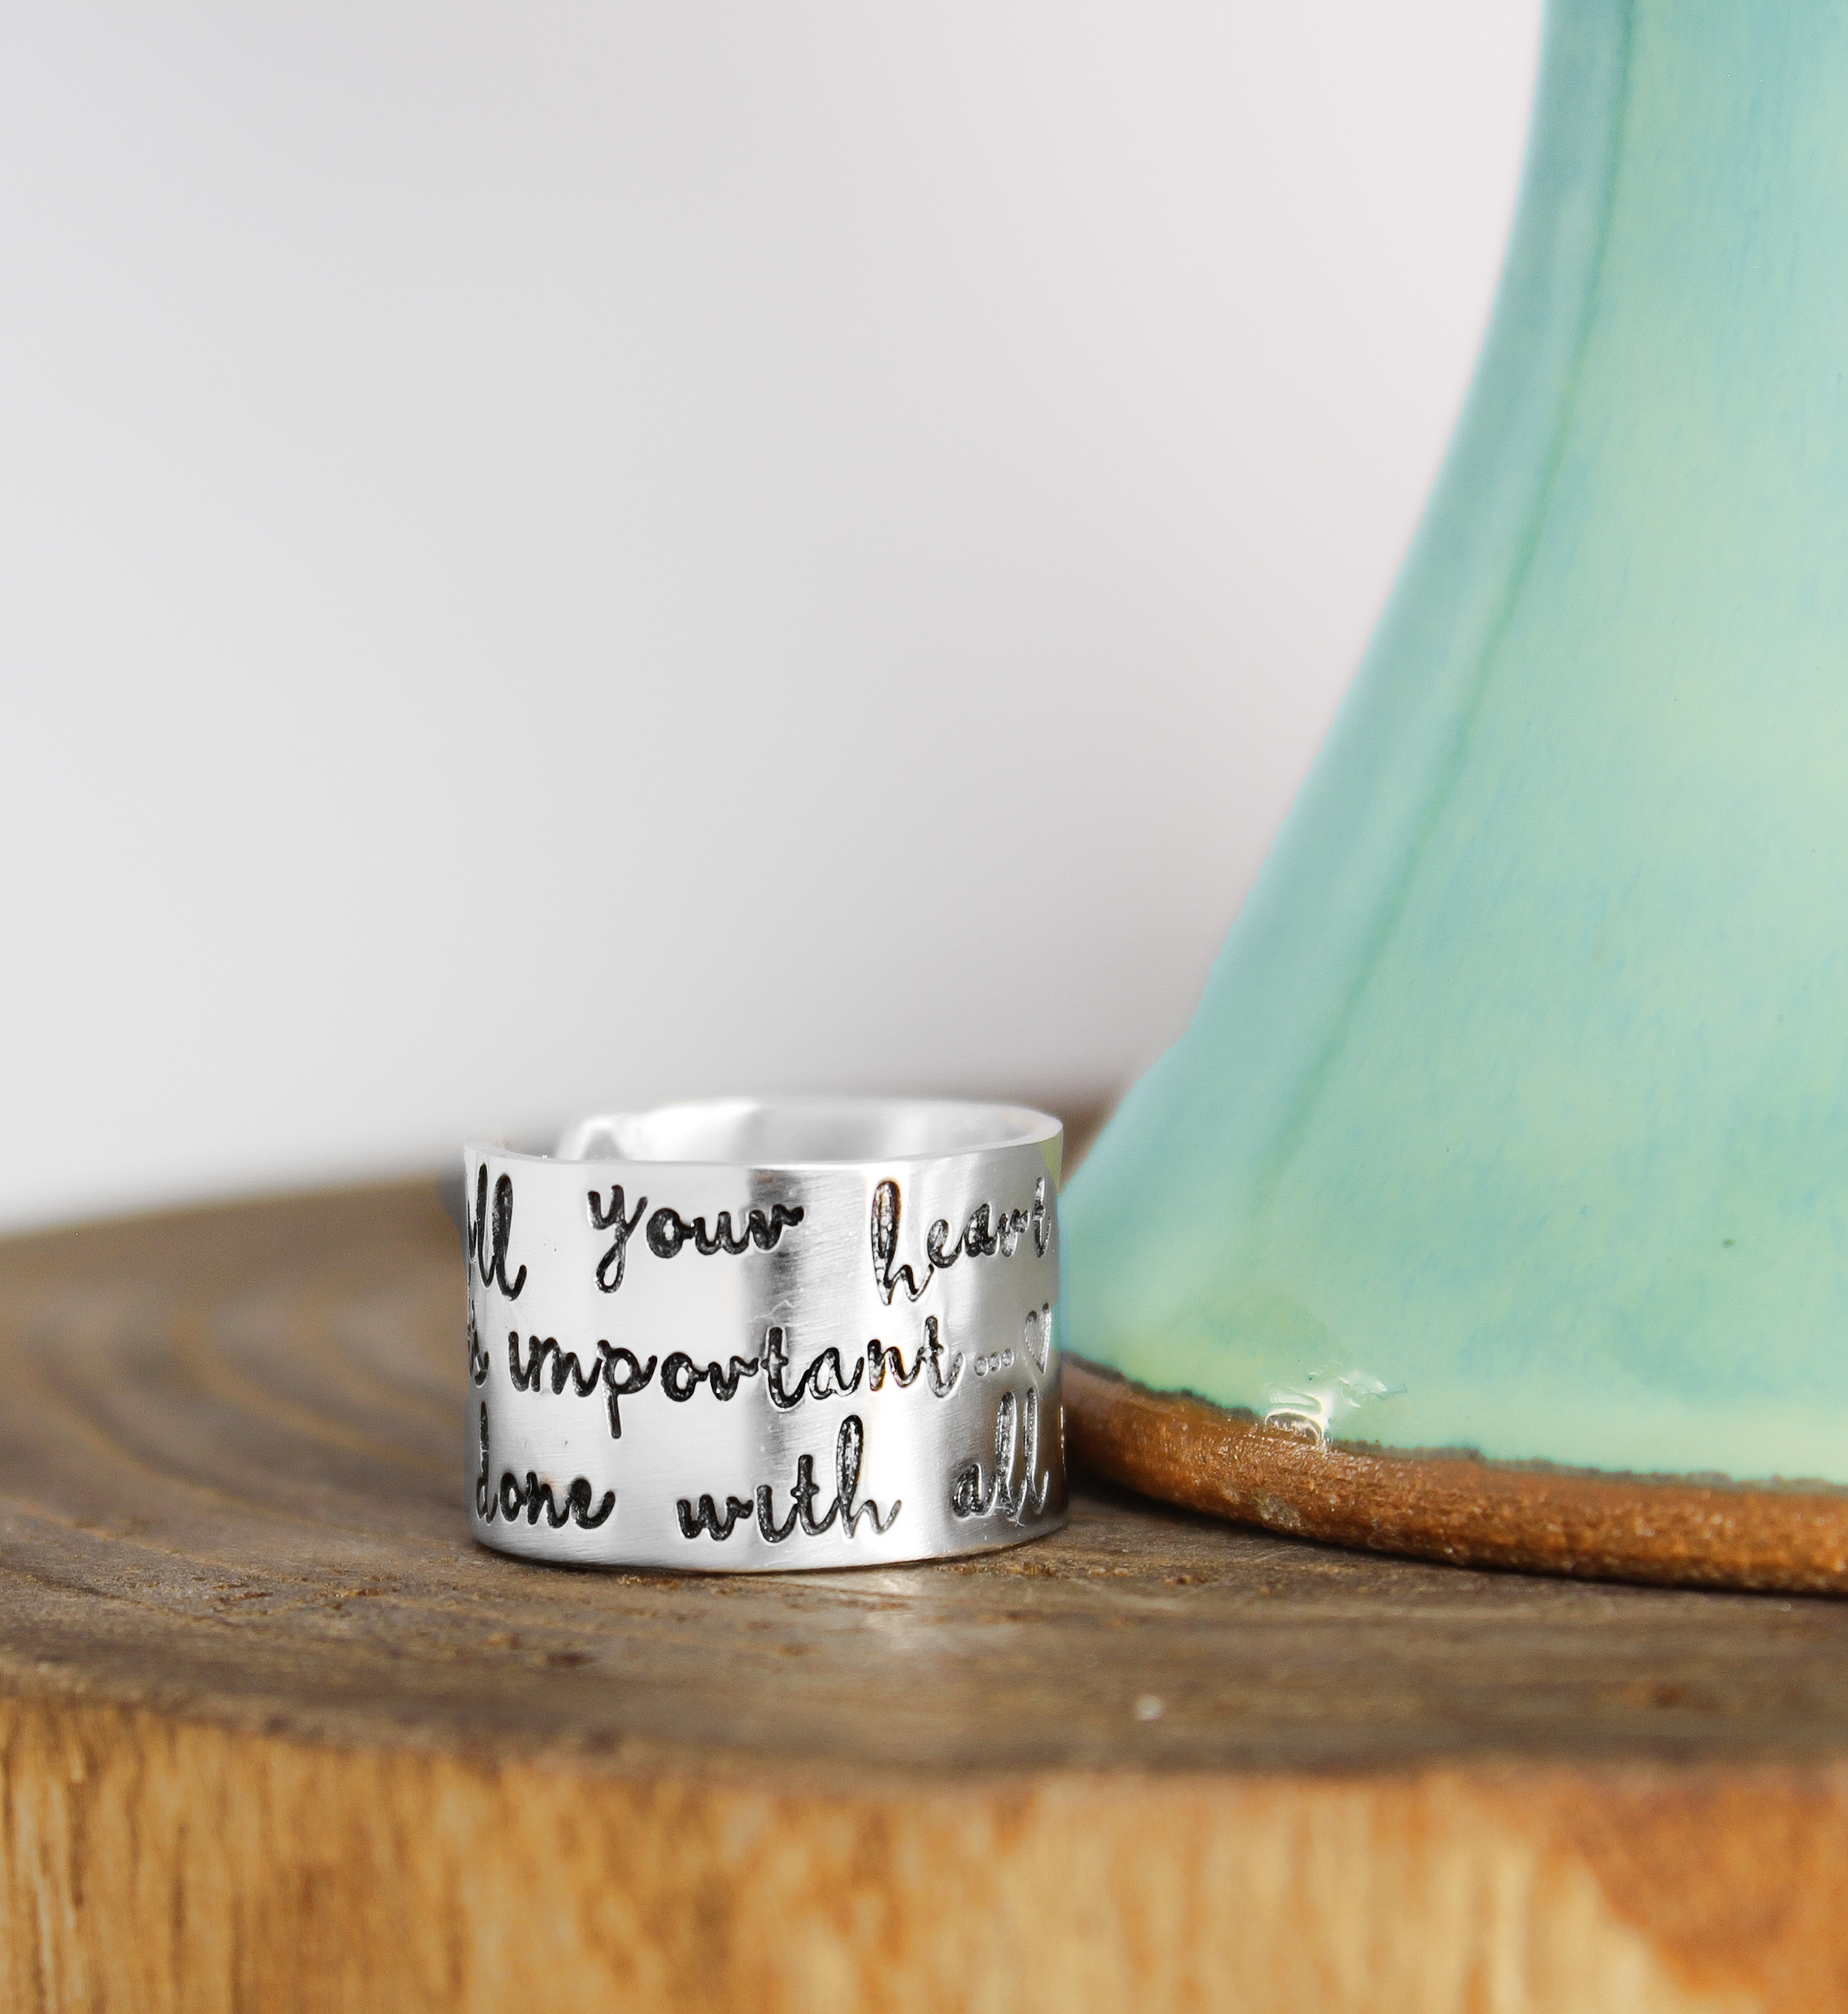 So Fill Your Heart Inspiration Ring